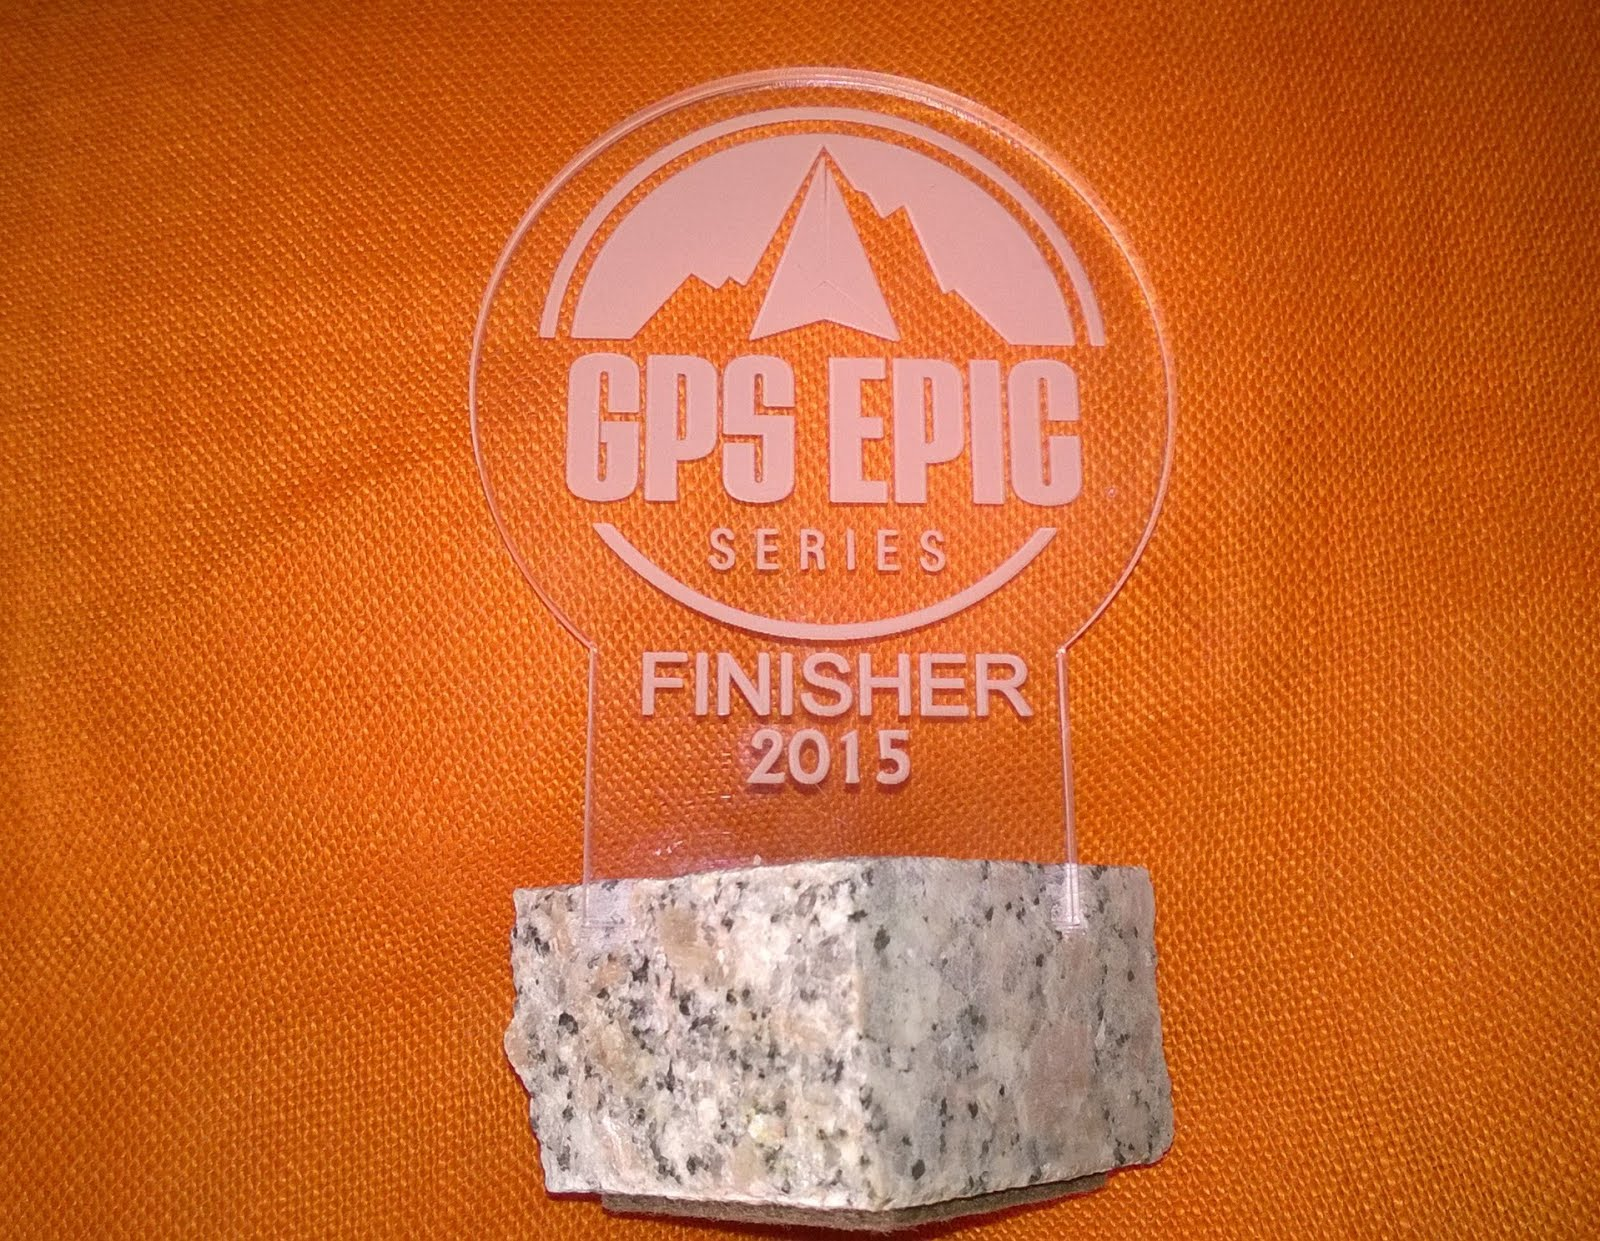 Gps Epic Séries 2015